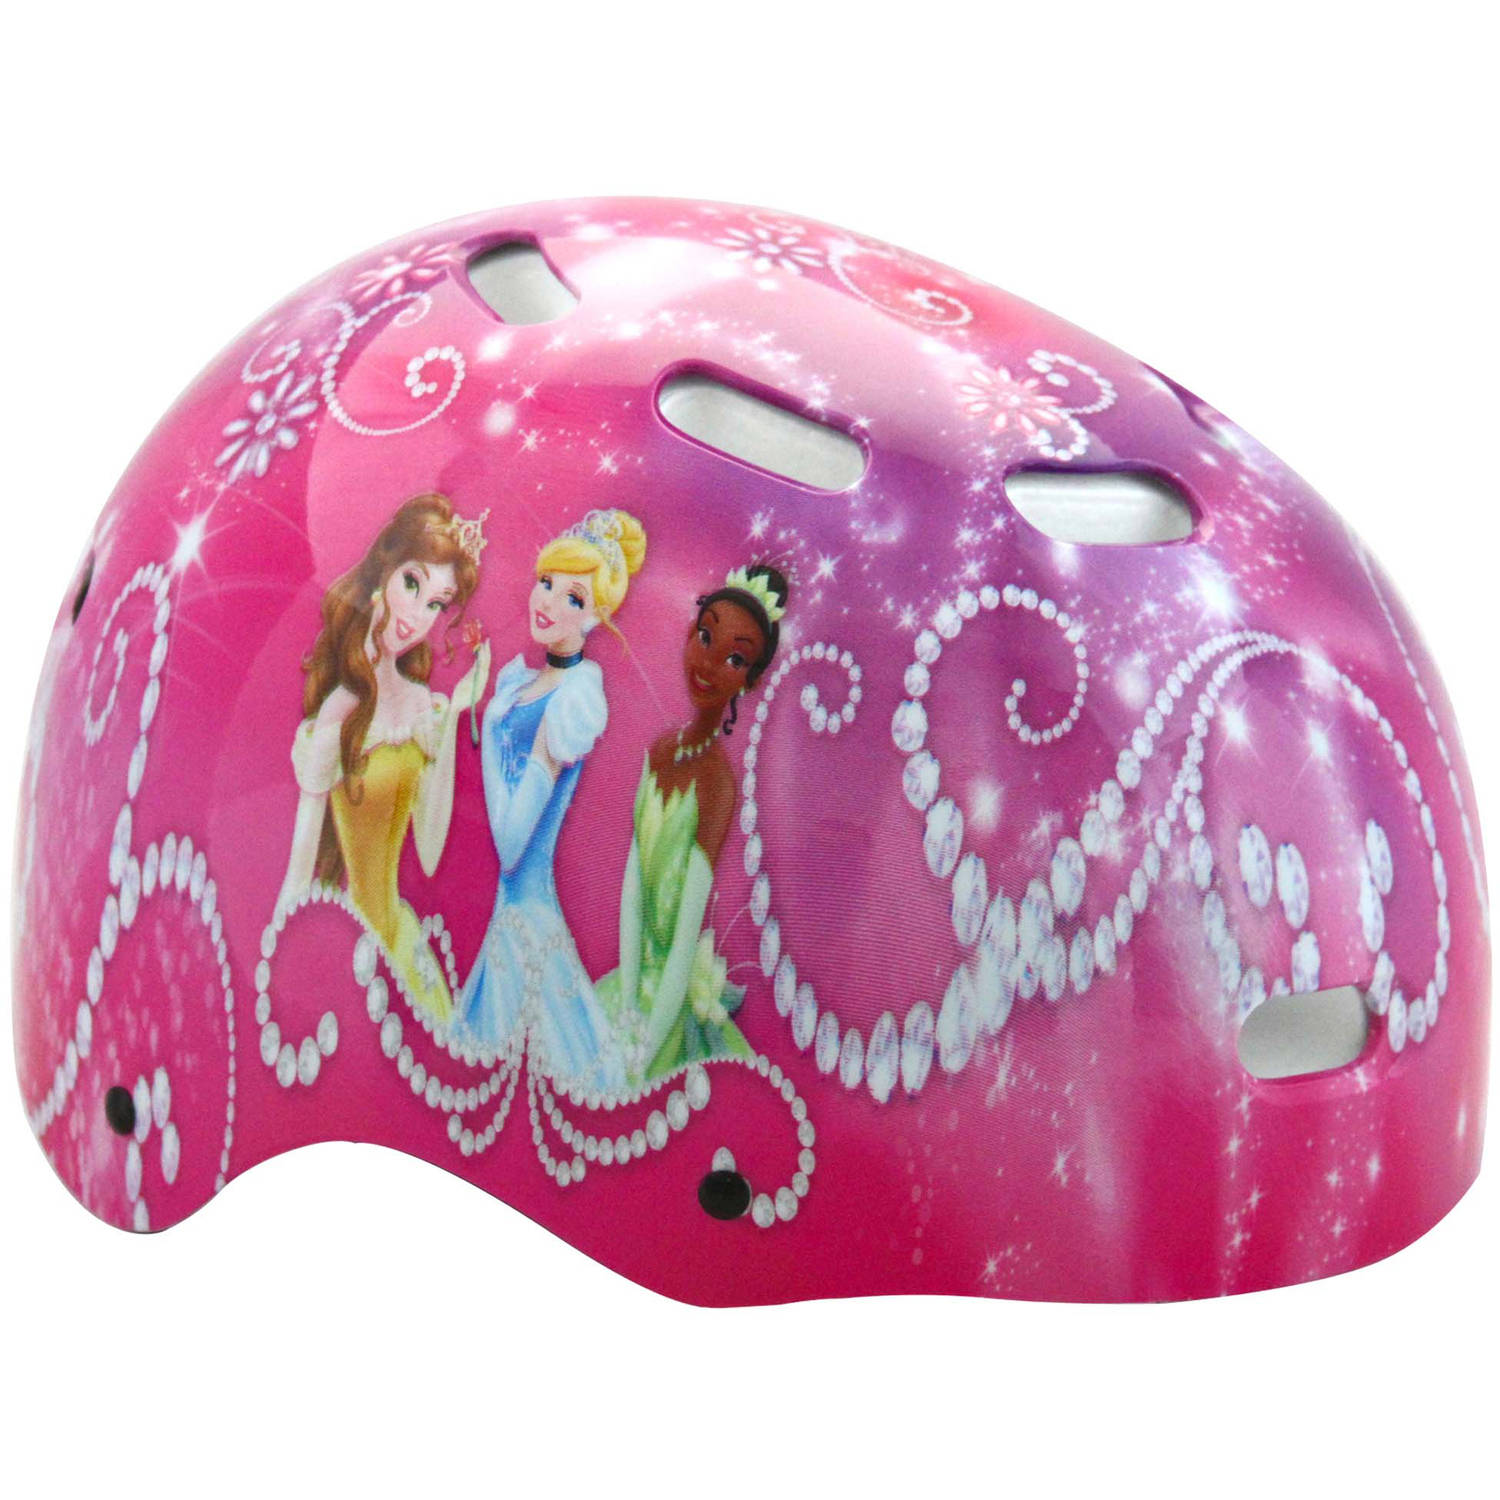 Bell Sports Princess Child Helmet